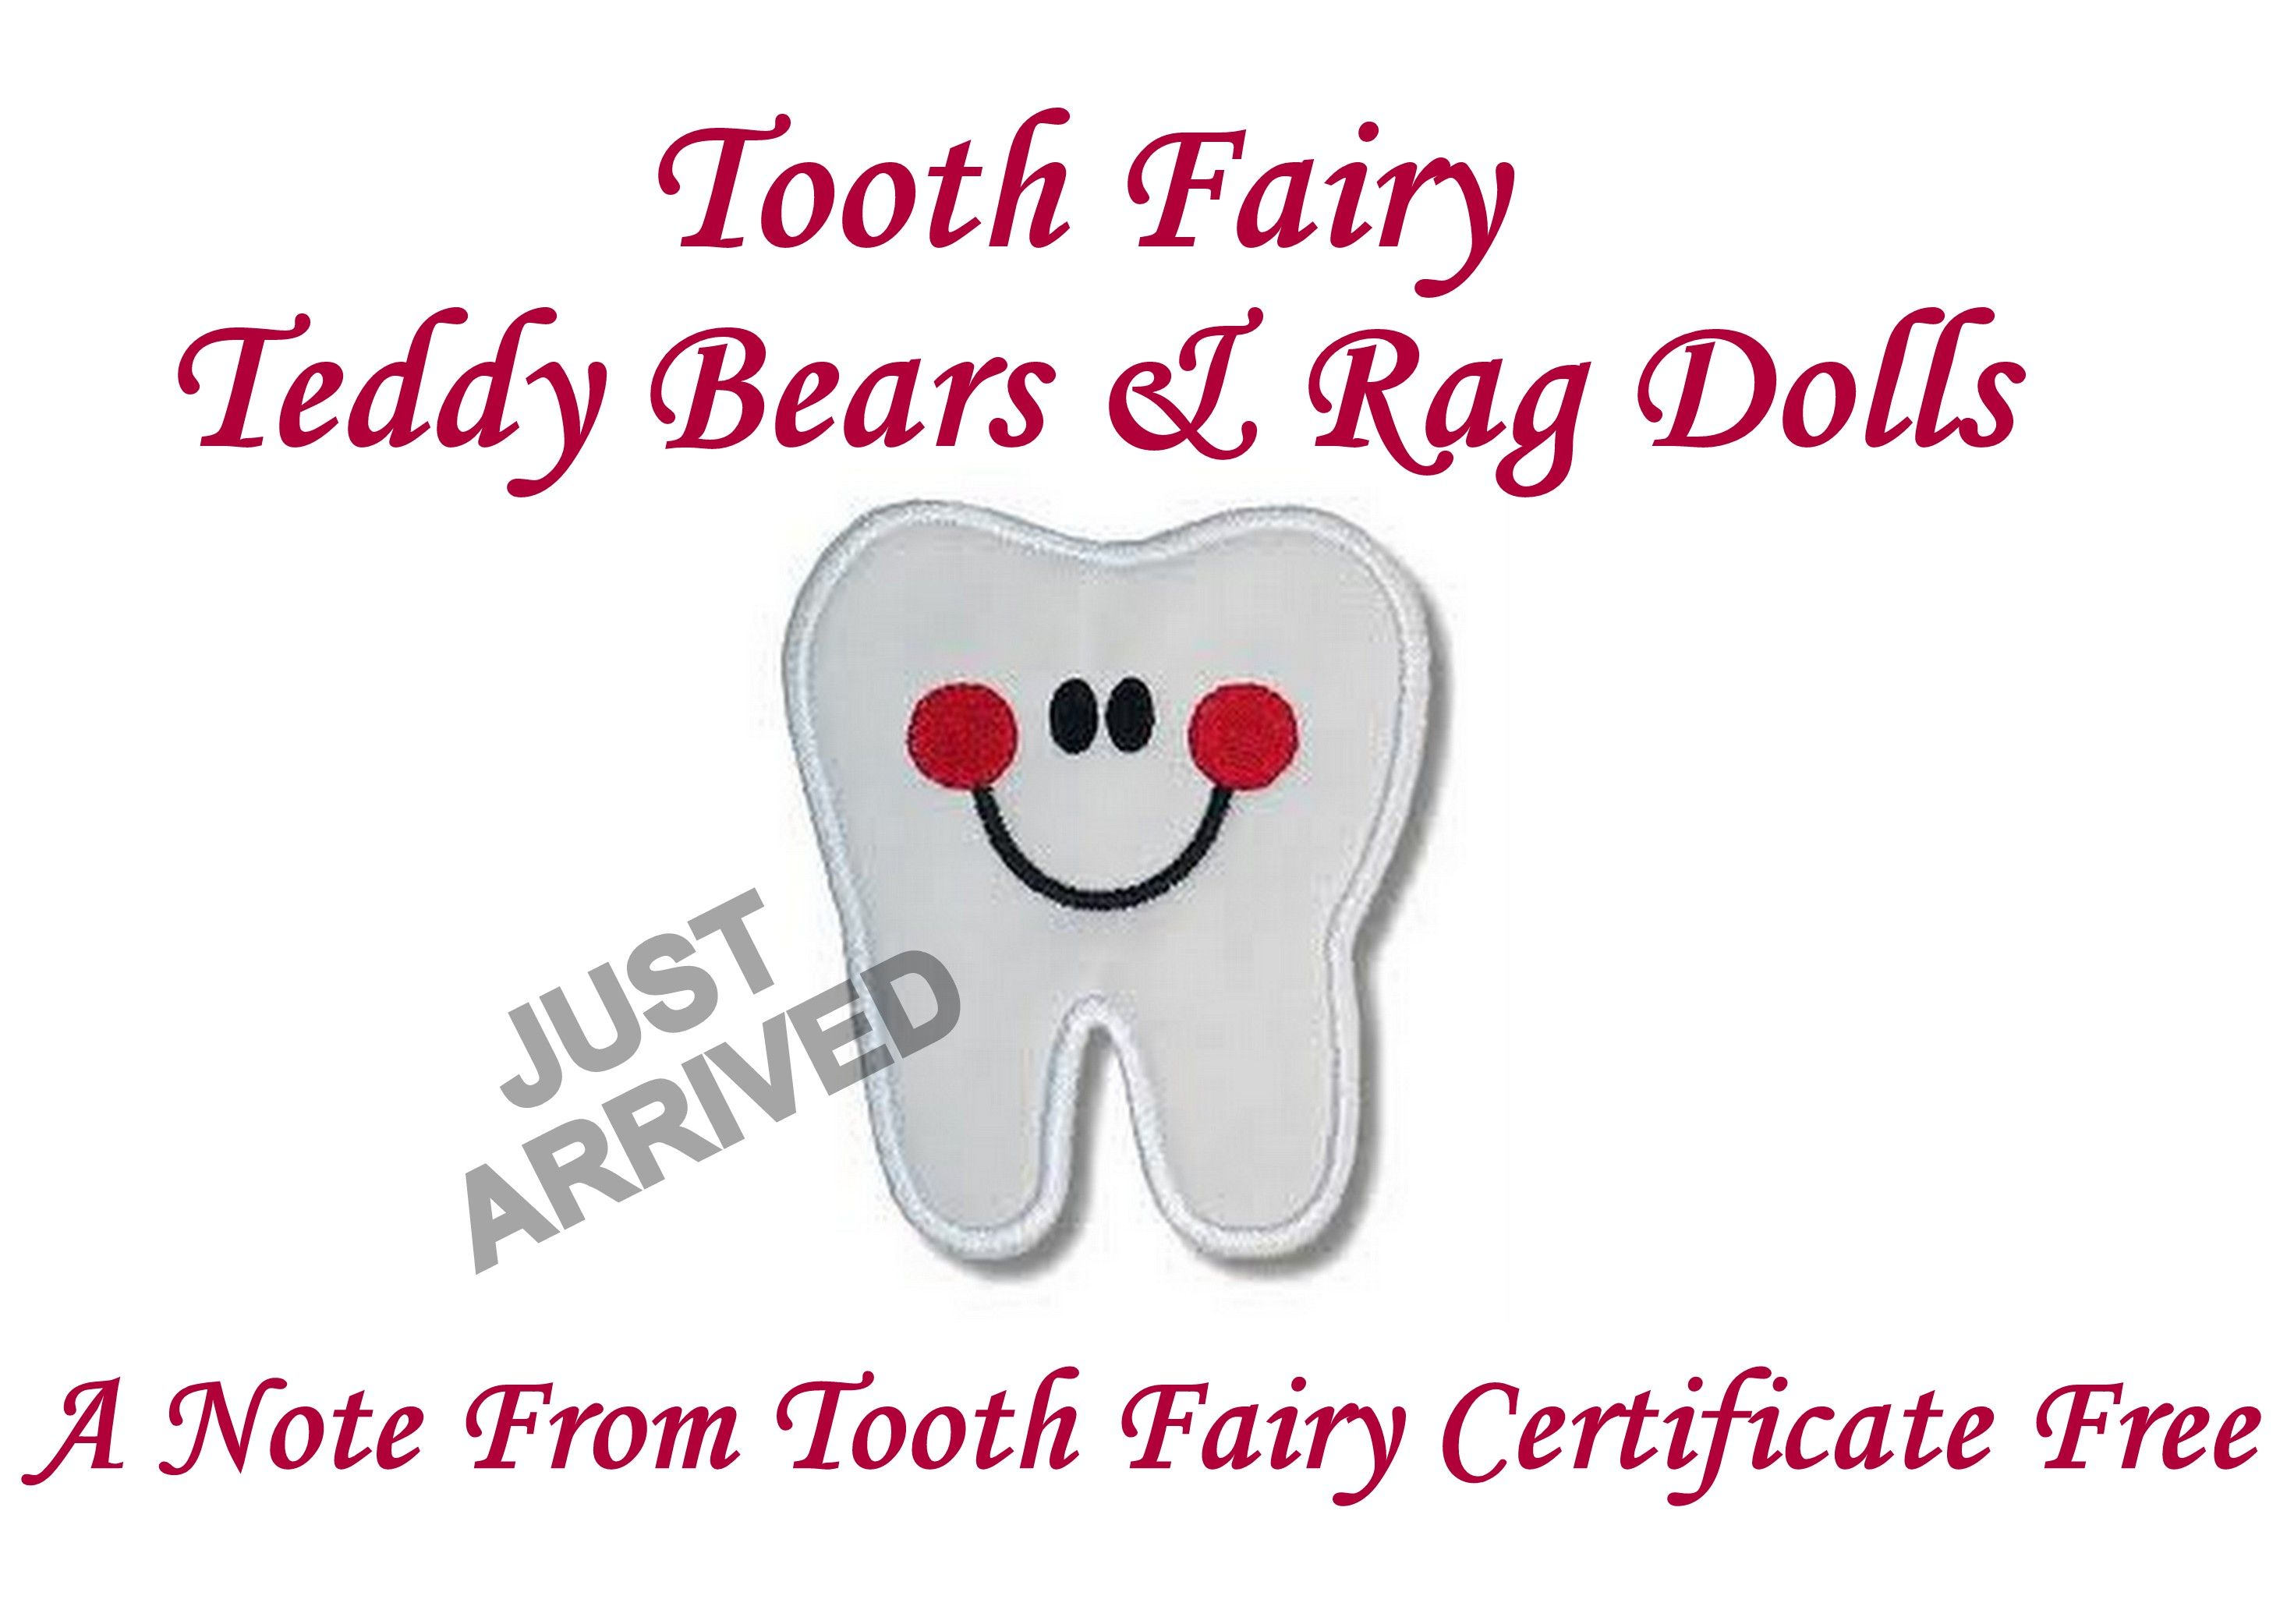 Tooth Fairy Teddy Bears & Rag Dolls